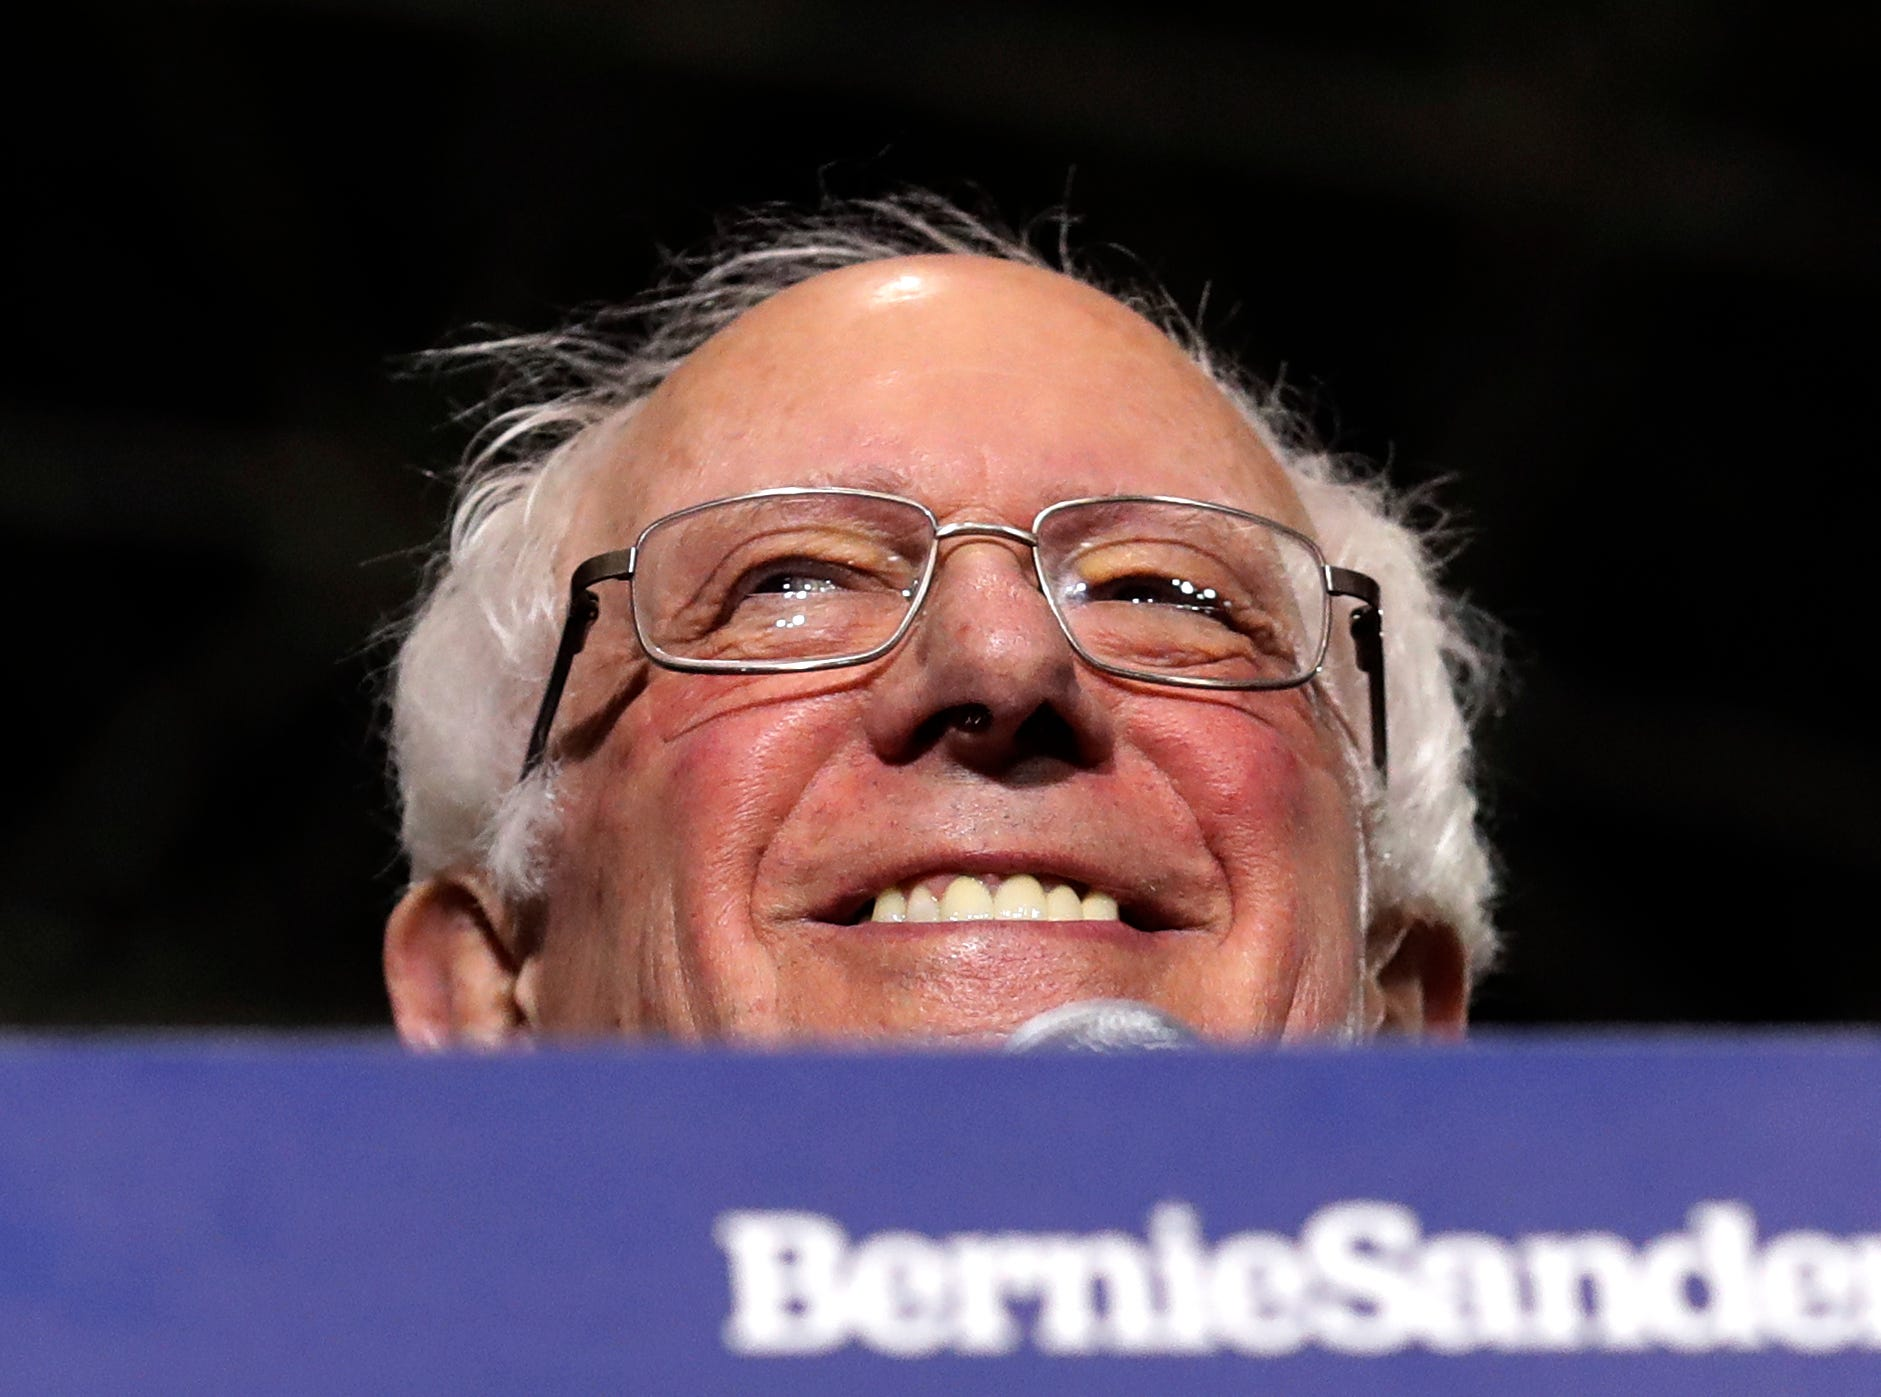 Sen. Bernie Sanders, I-Vt., smiles as he kicks off his 2020 presidential campaign at Navy Pier in Chicago, Sunday, March 3, 2019. Over the next several weeks, Sanders will travel to Iowa, New Hampshire, South Carolina, Nevada, and California. He will then return to Burlington, Vt., for the official launch of his campaign.